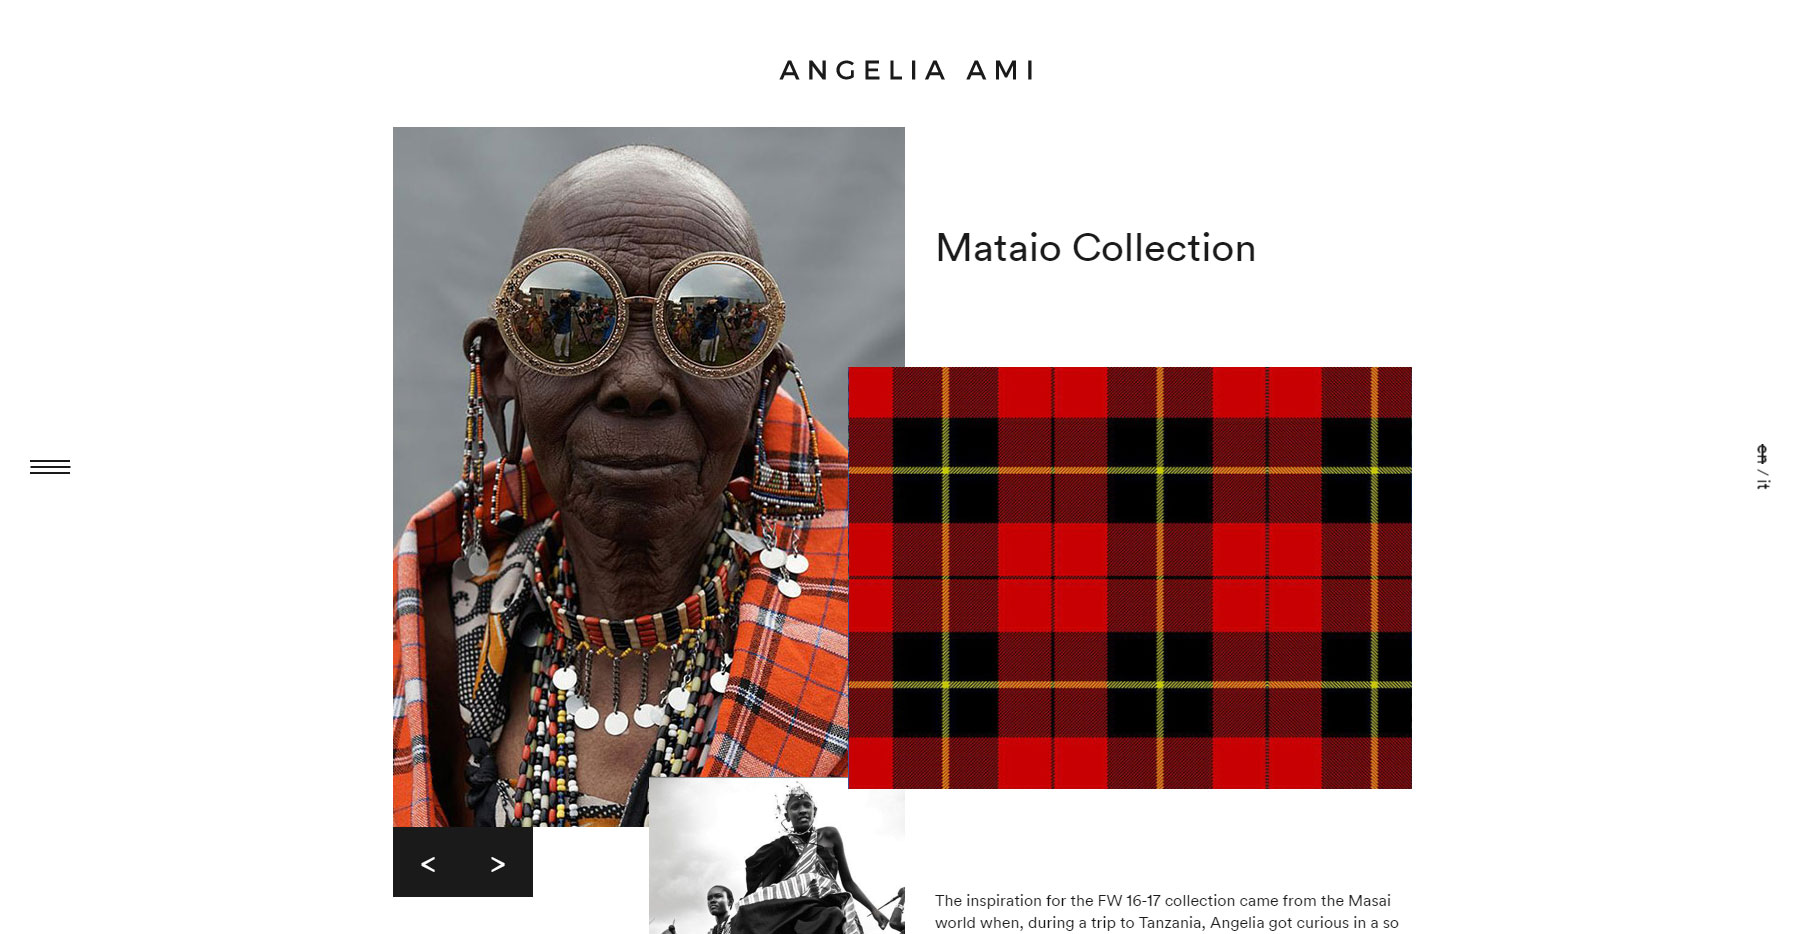 Angelia Ami - Website of the Day